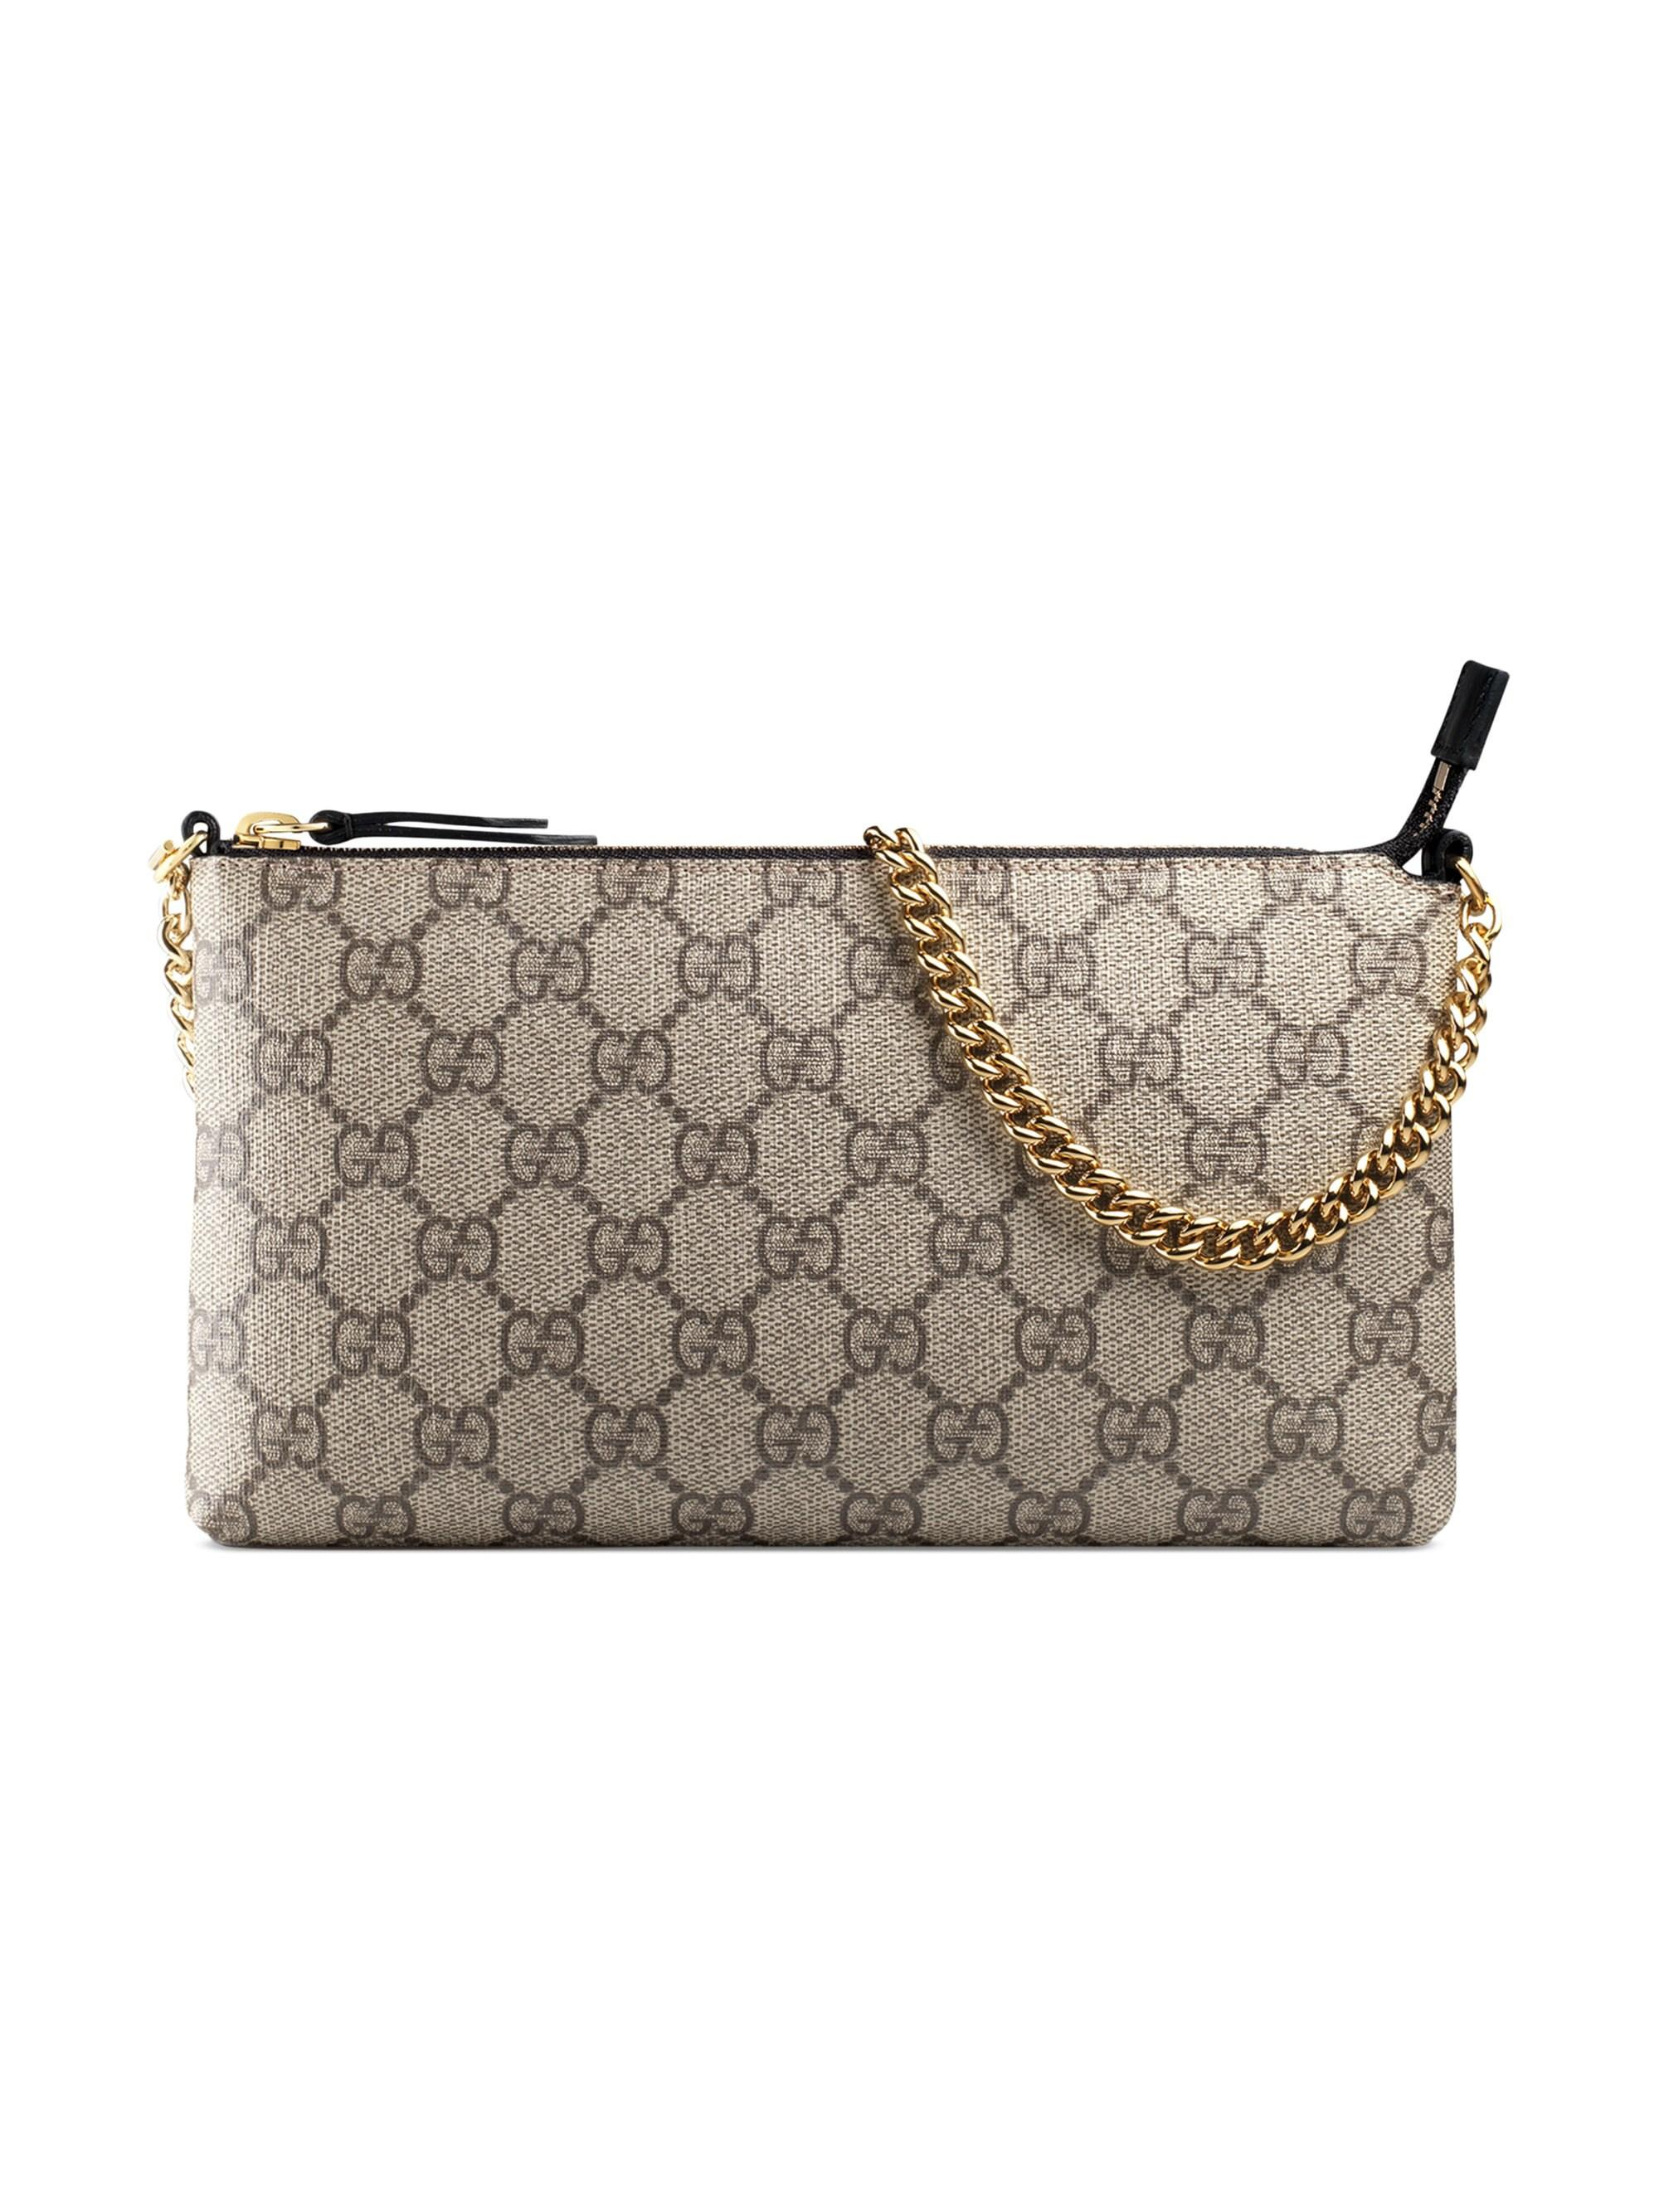 eaa03849824945 Gucci Women's Linea A Pouch - Brown in Brown - Lyst